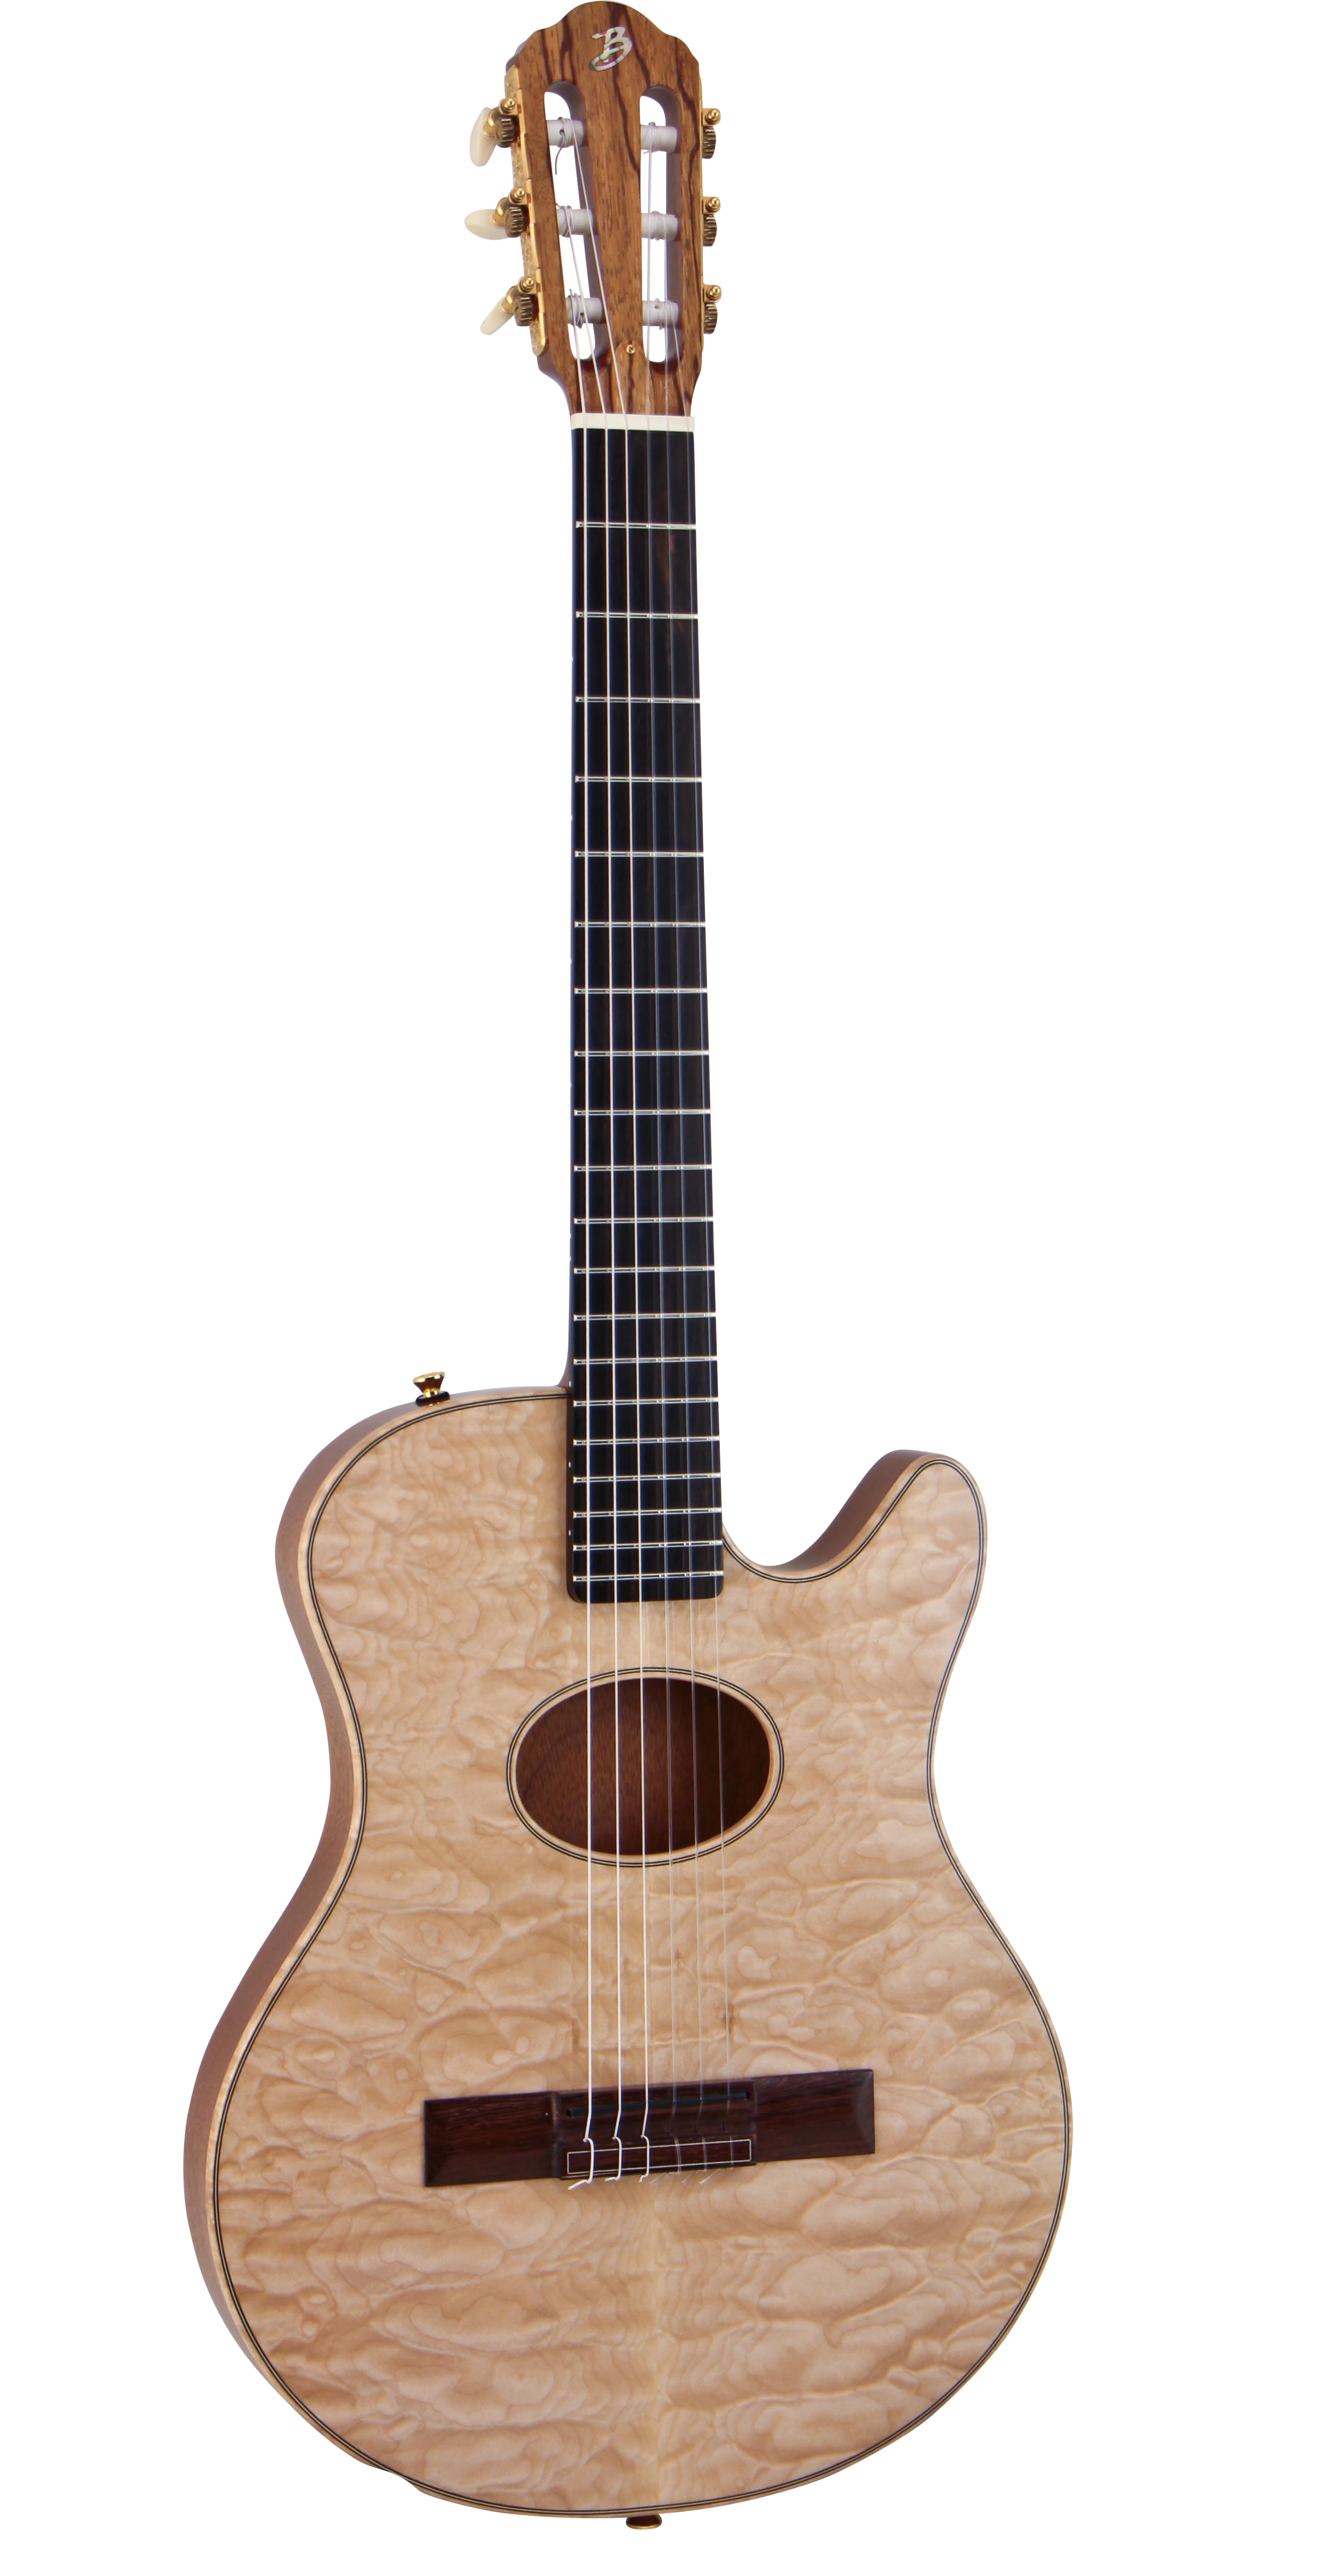 The Starlight Nylon String